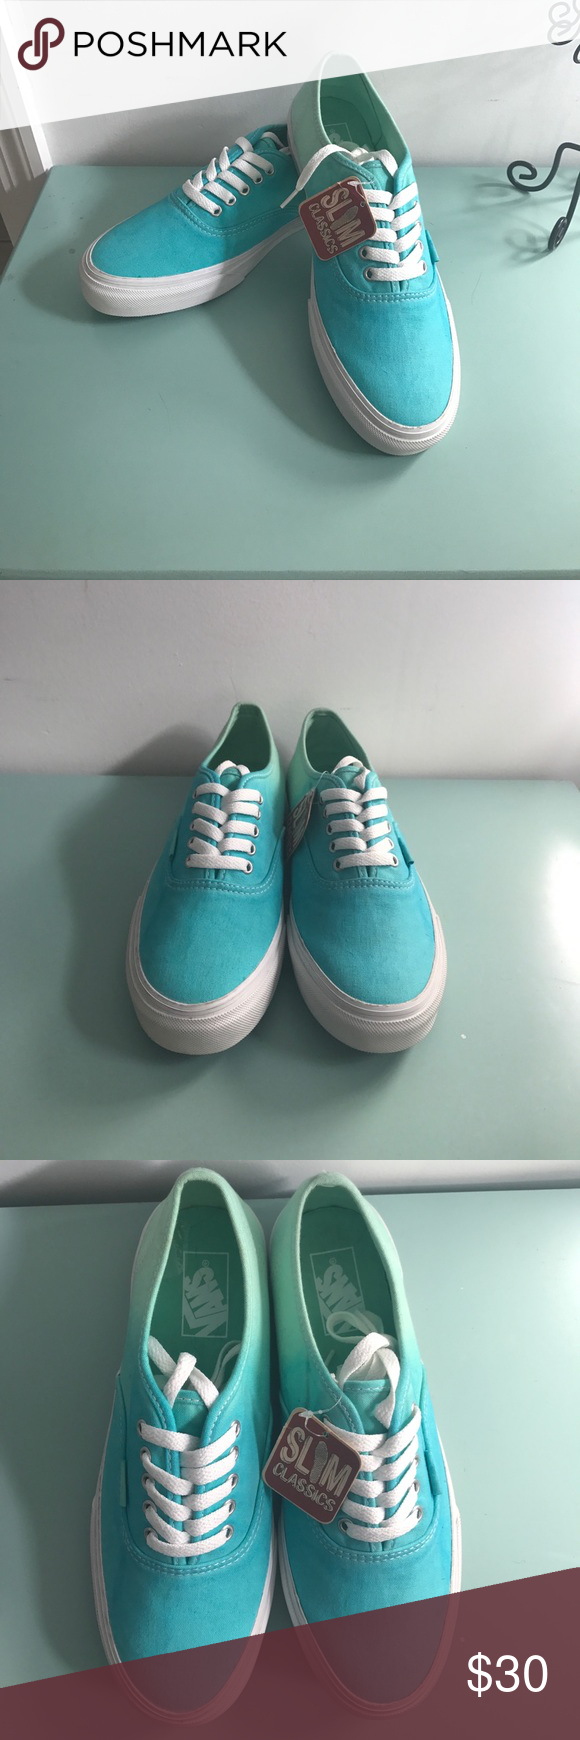 9e1a4f311a70 Vans ombré slim classics women s 9 NWT Turquoise blue fades to mint green  very cool 😎 vans Vans Shoes Sneakers